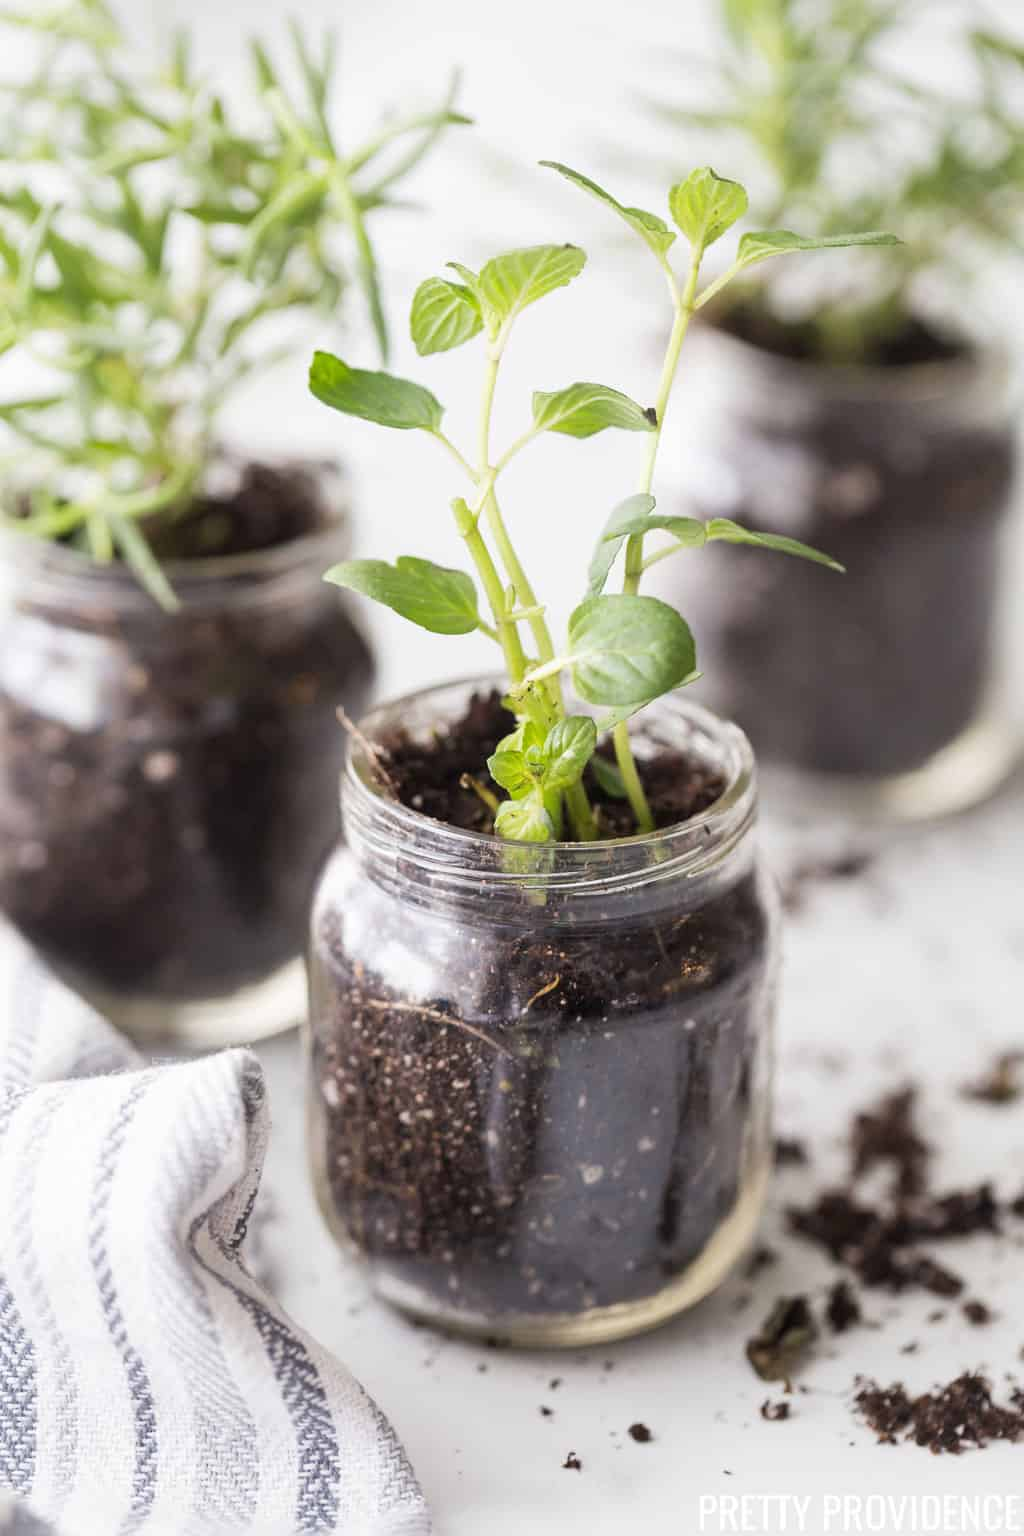 Rosemary and Mint herbs in baby food jars